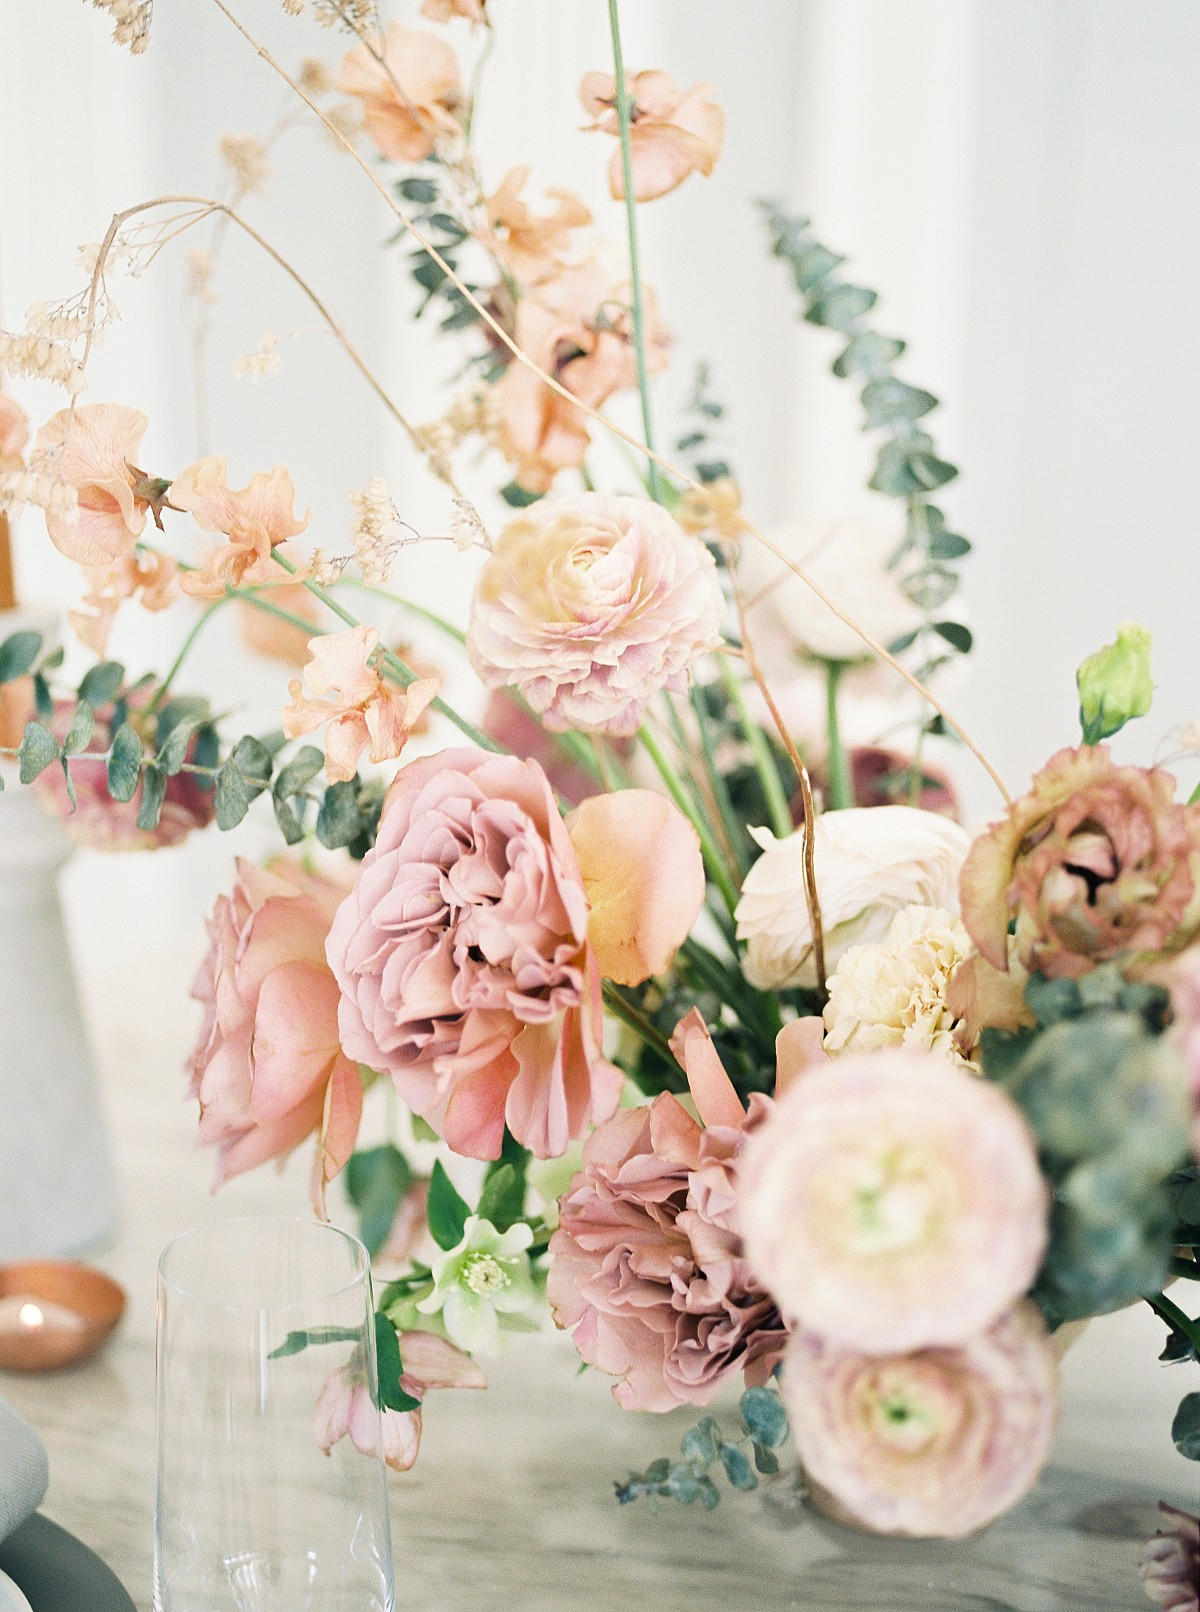 Blush and Caramel Florals for a Spring Wedding